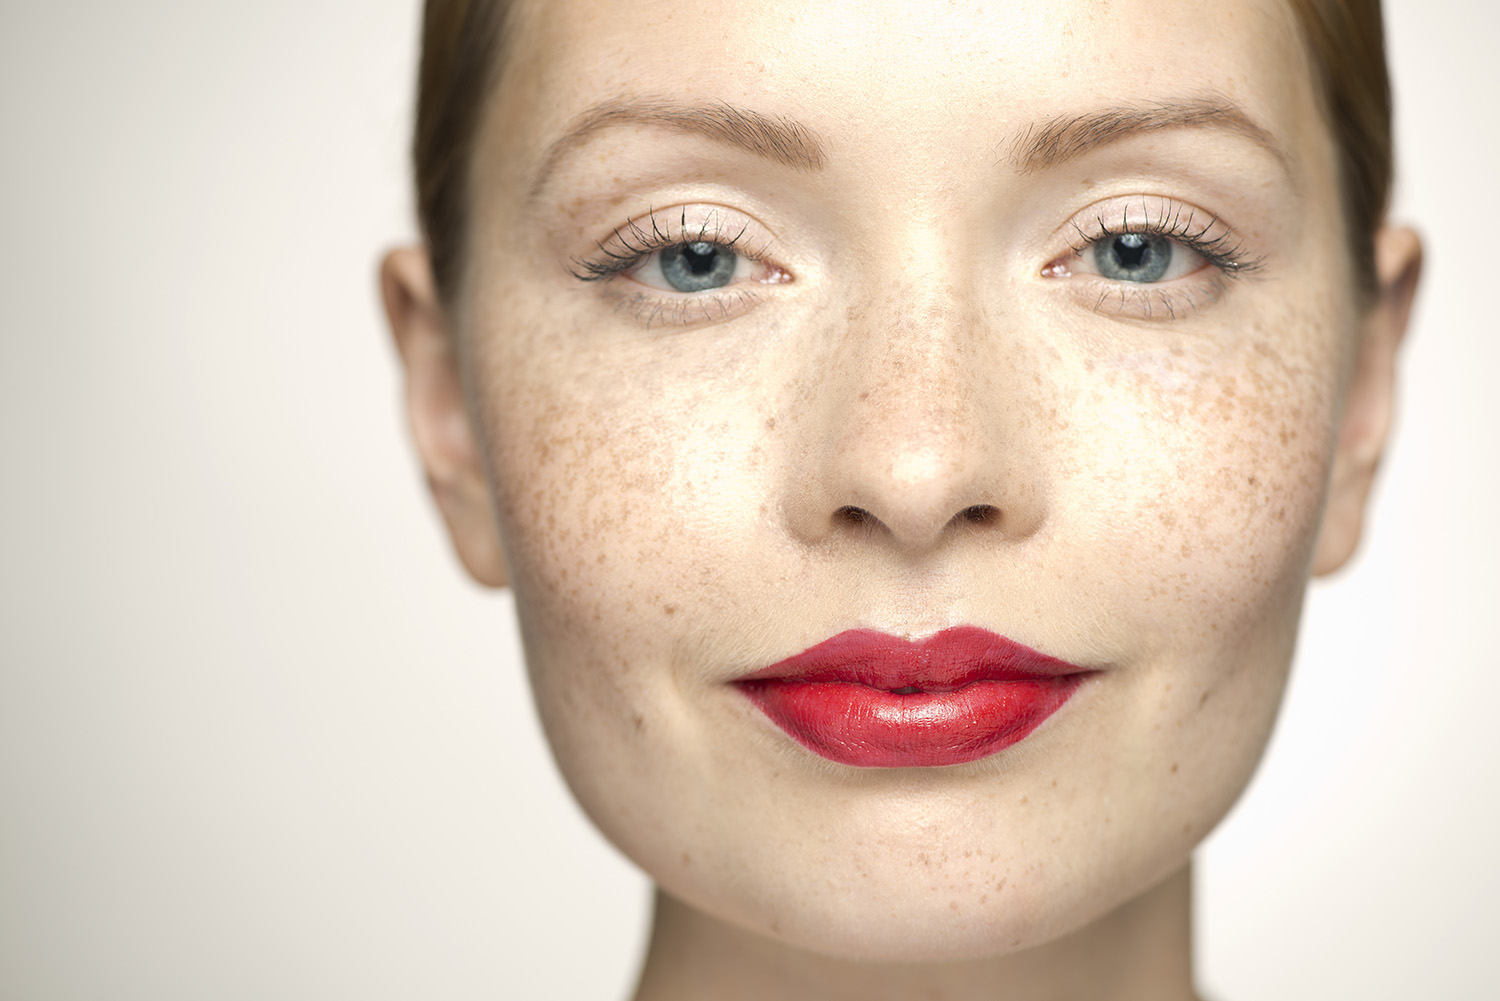 Red Lips on Woman